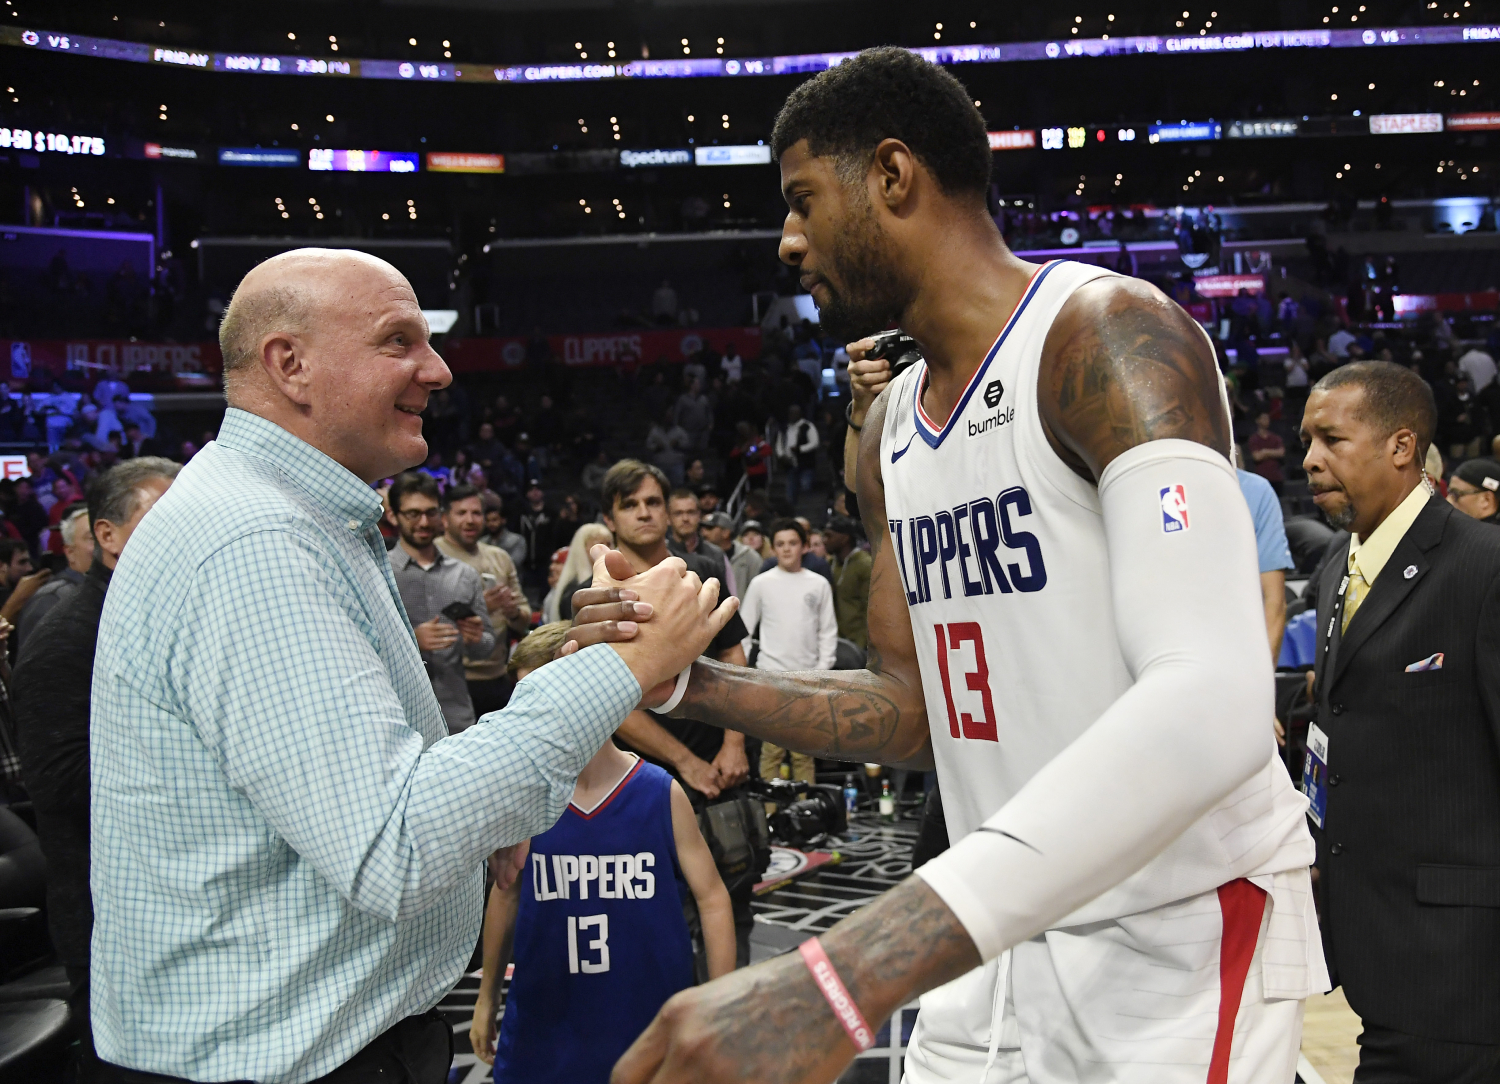 The Los Angeles Clippers have been pretty successful under Steve Ballmer. In fact, Ballmer is paying millions to make the Clippers LA's team.